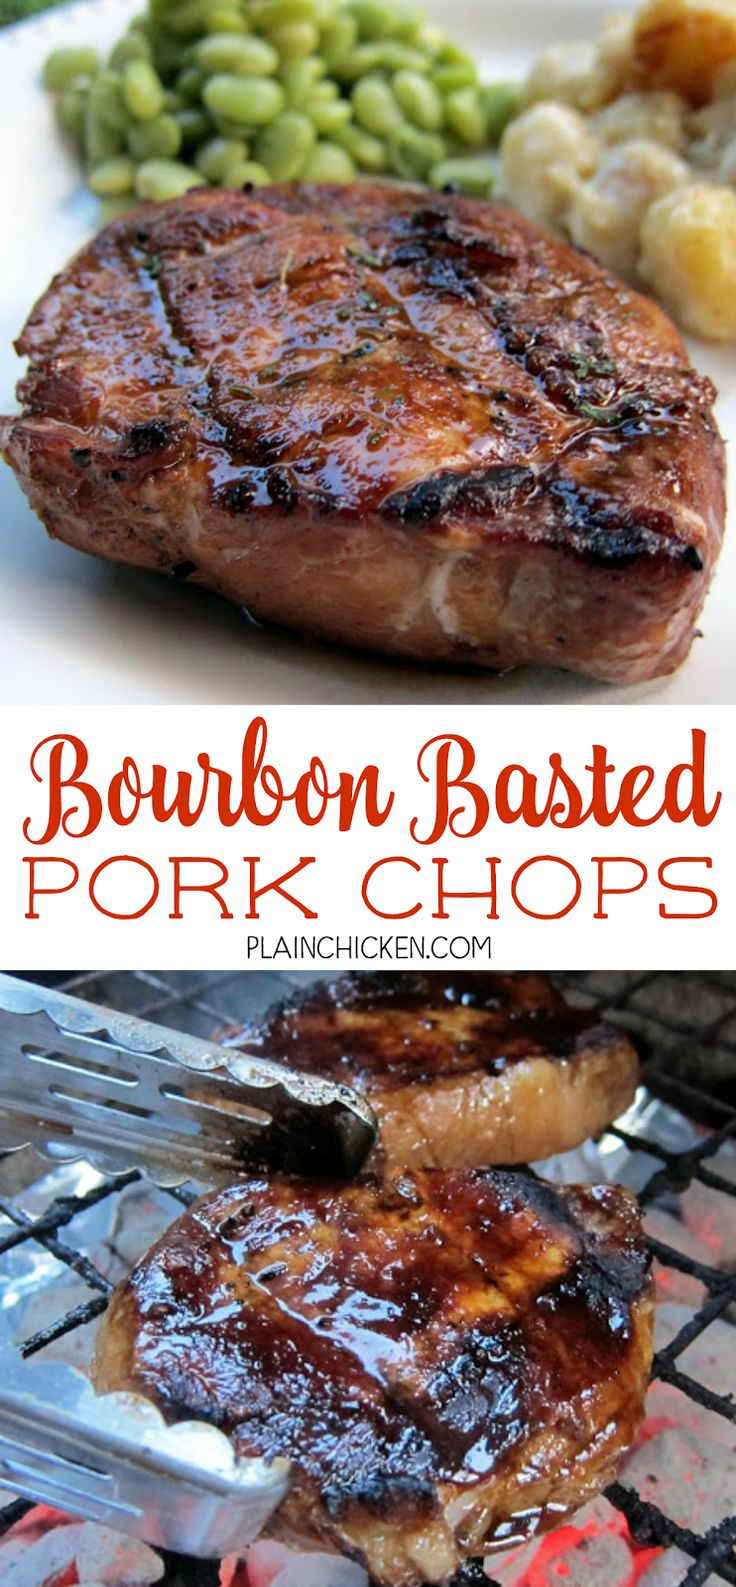 Bourbon Basted Pork Chops - pork chops basted in a quick homemade ...